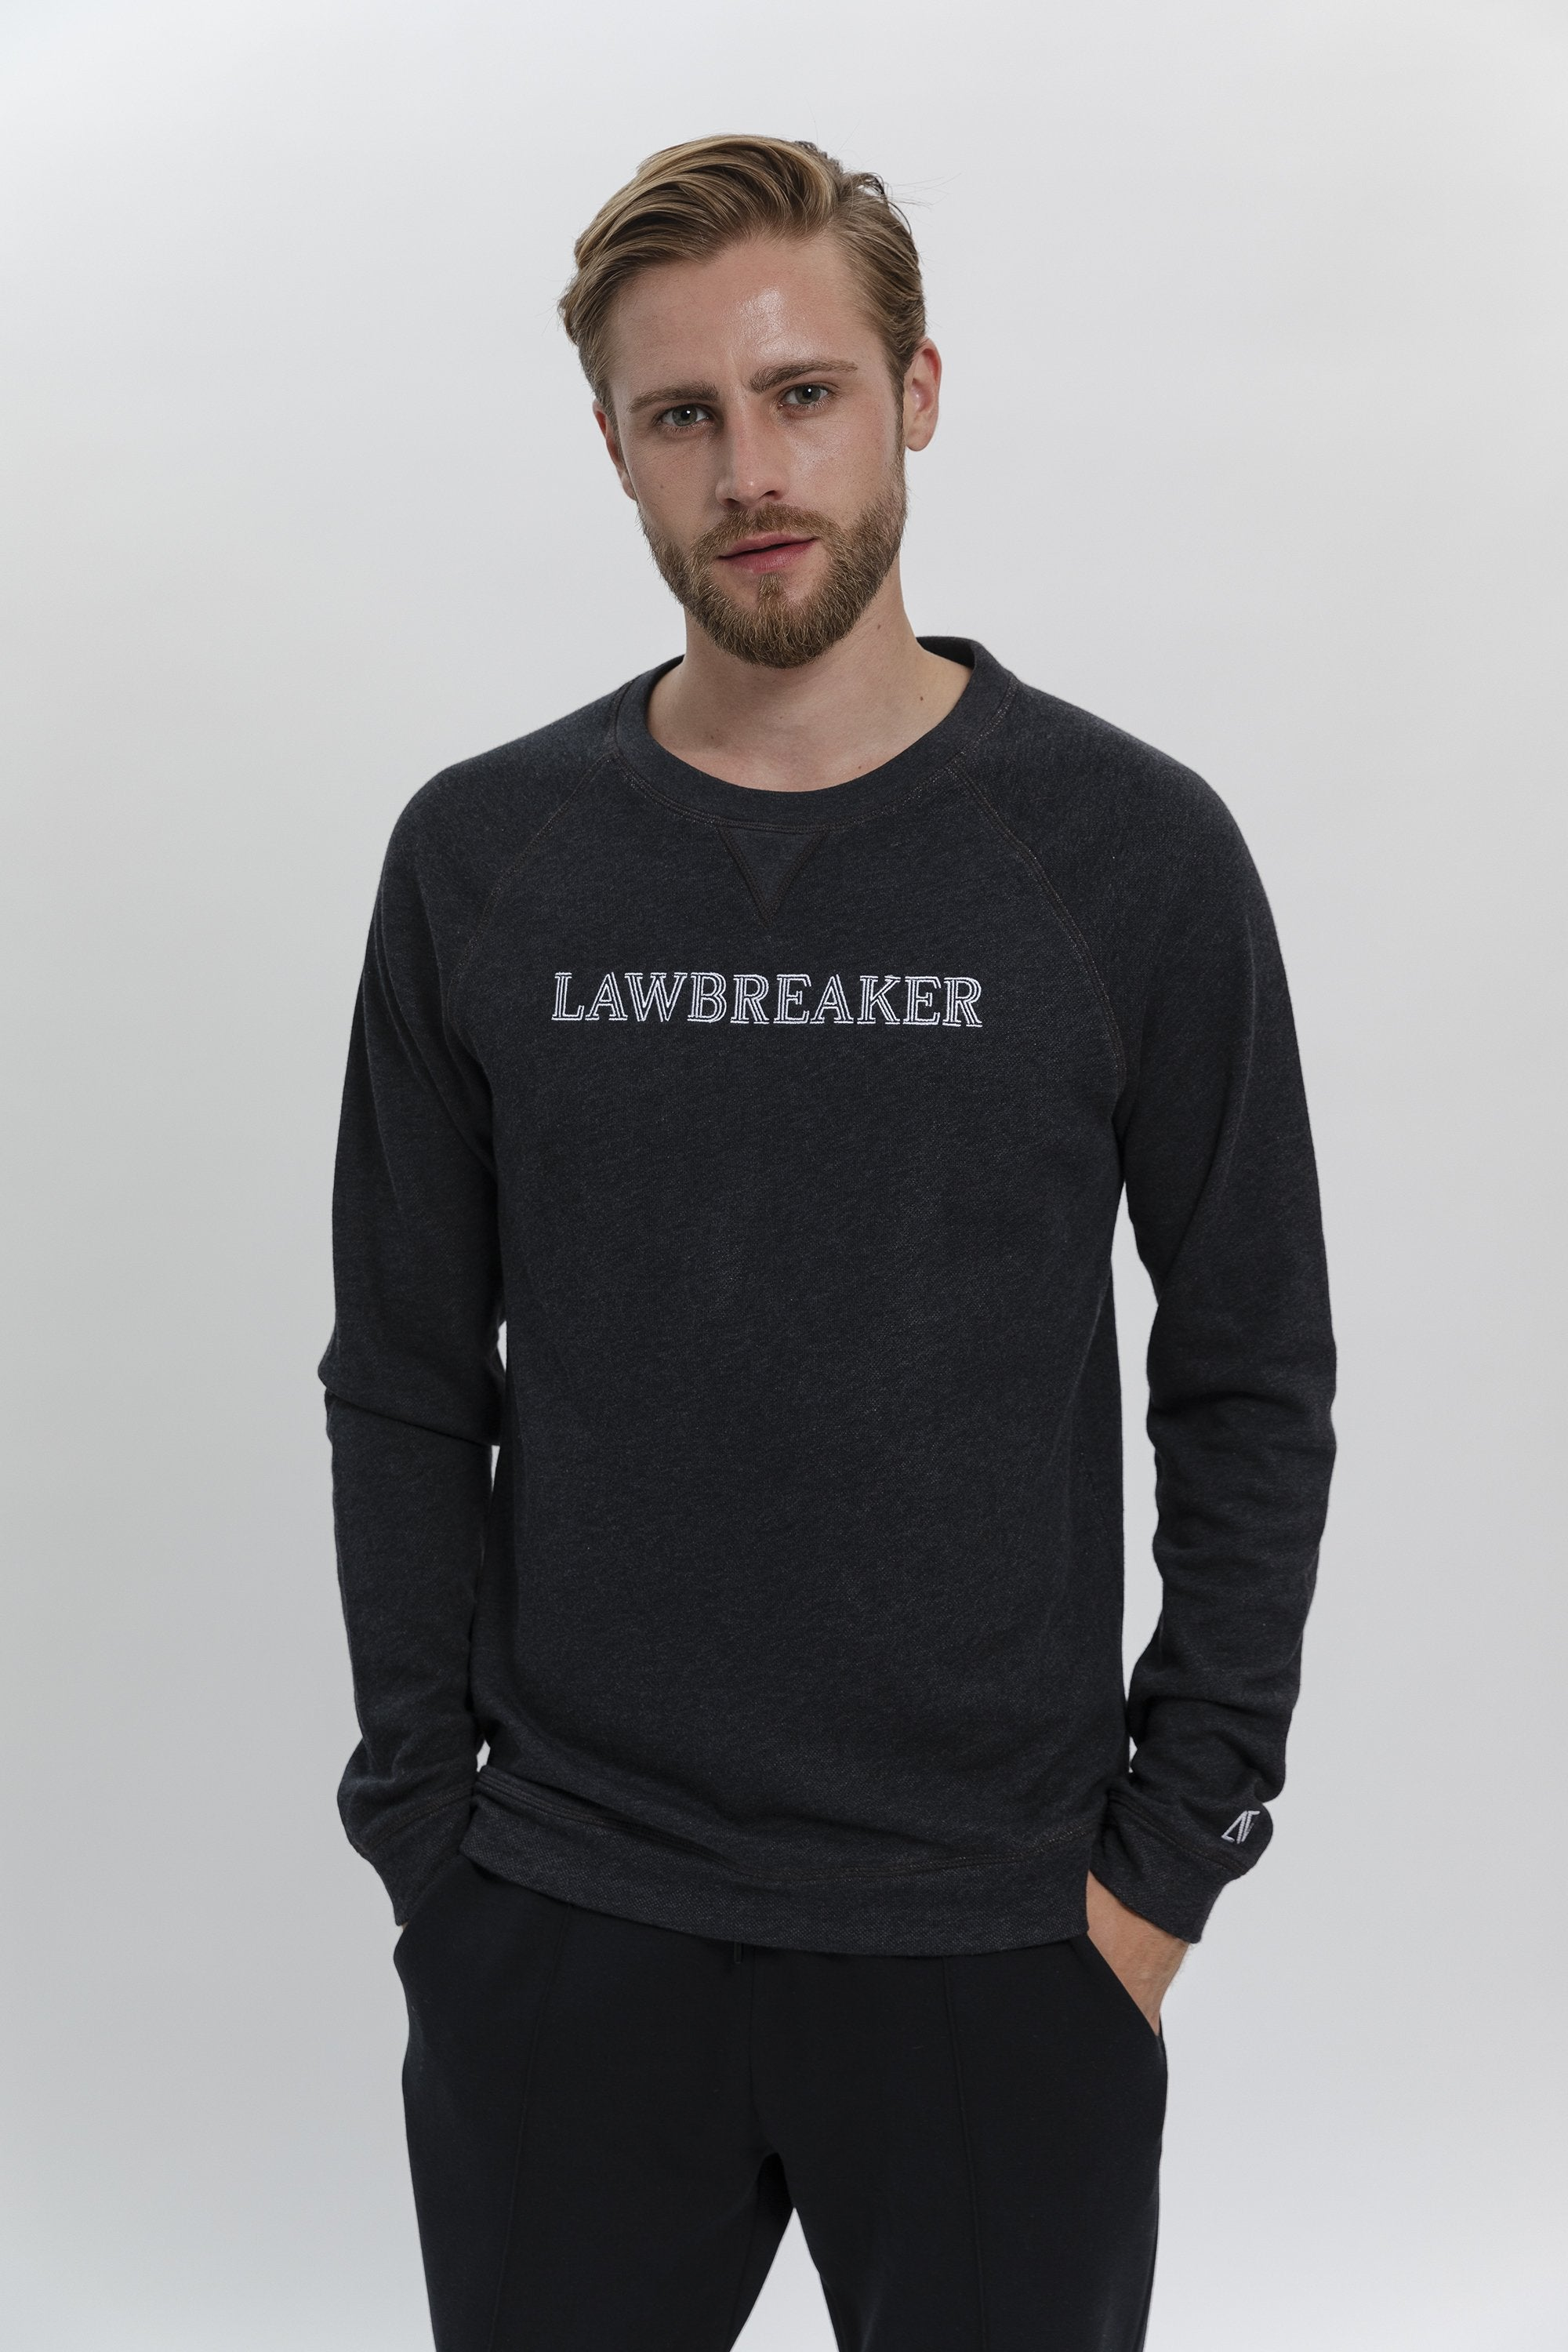 Law Breaker Tee